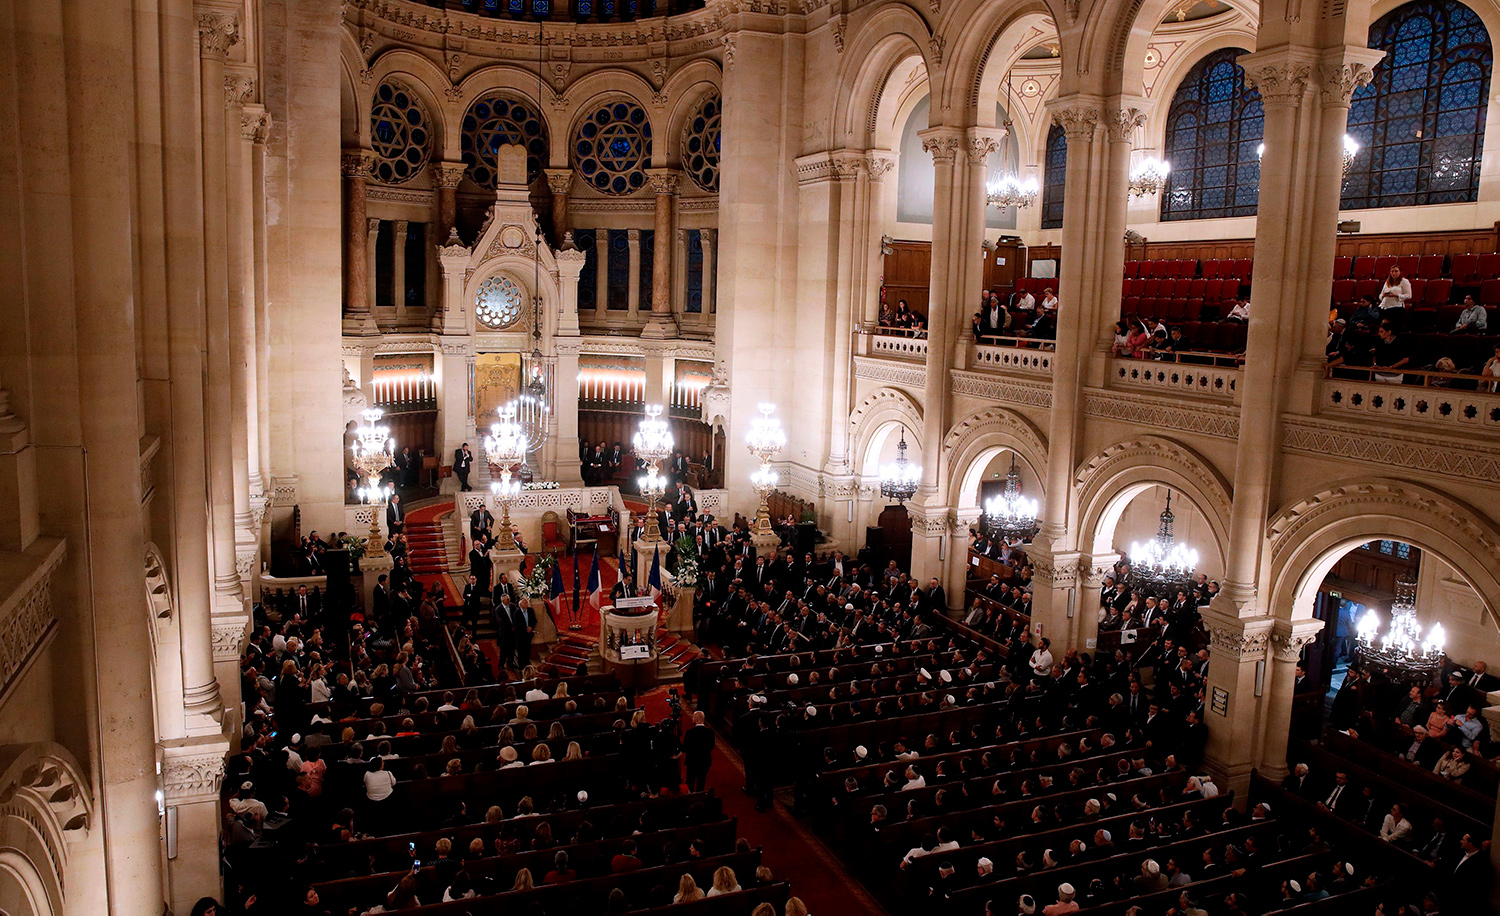 Rosh Hashanah at the Great Synagogue in Paris on September 4, 2018. YOAN VALAT/AFP via Getty Images.